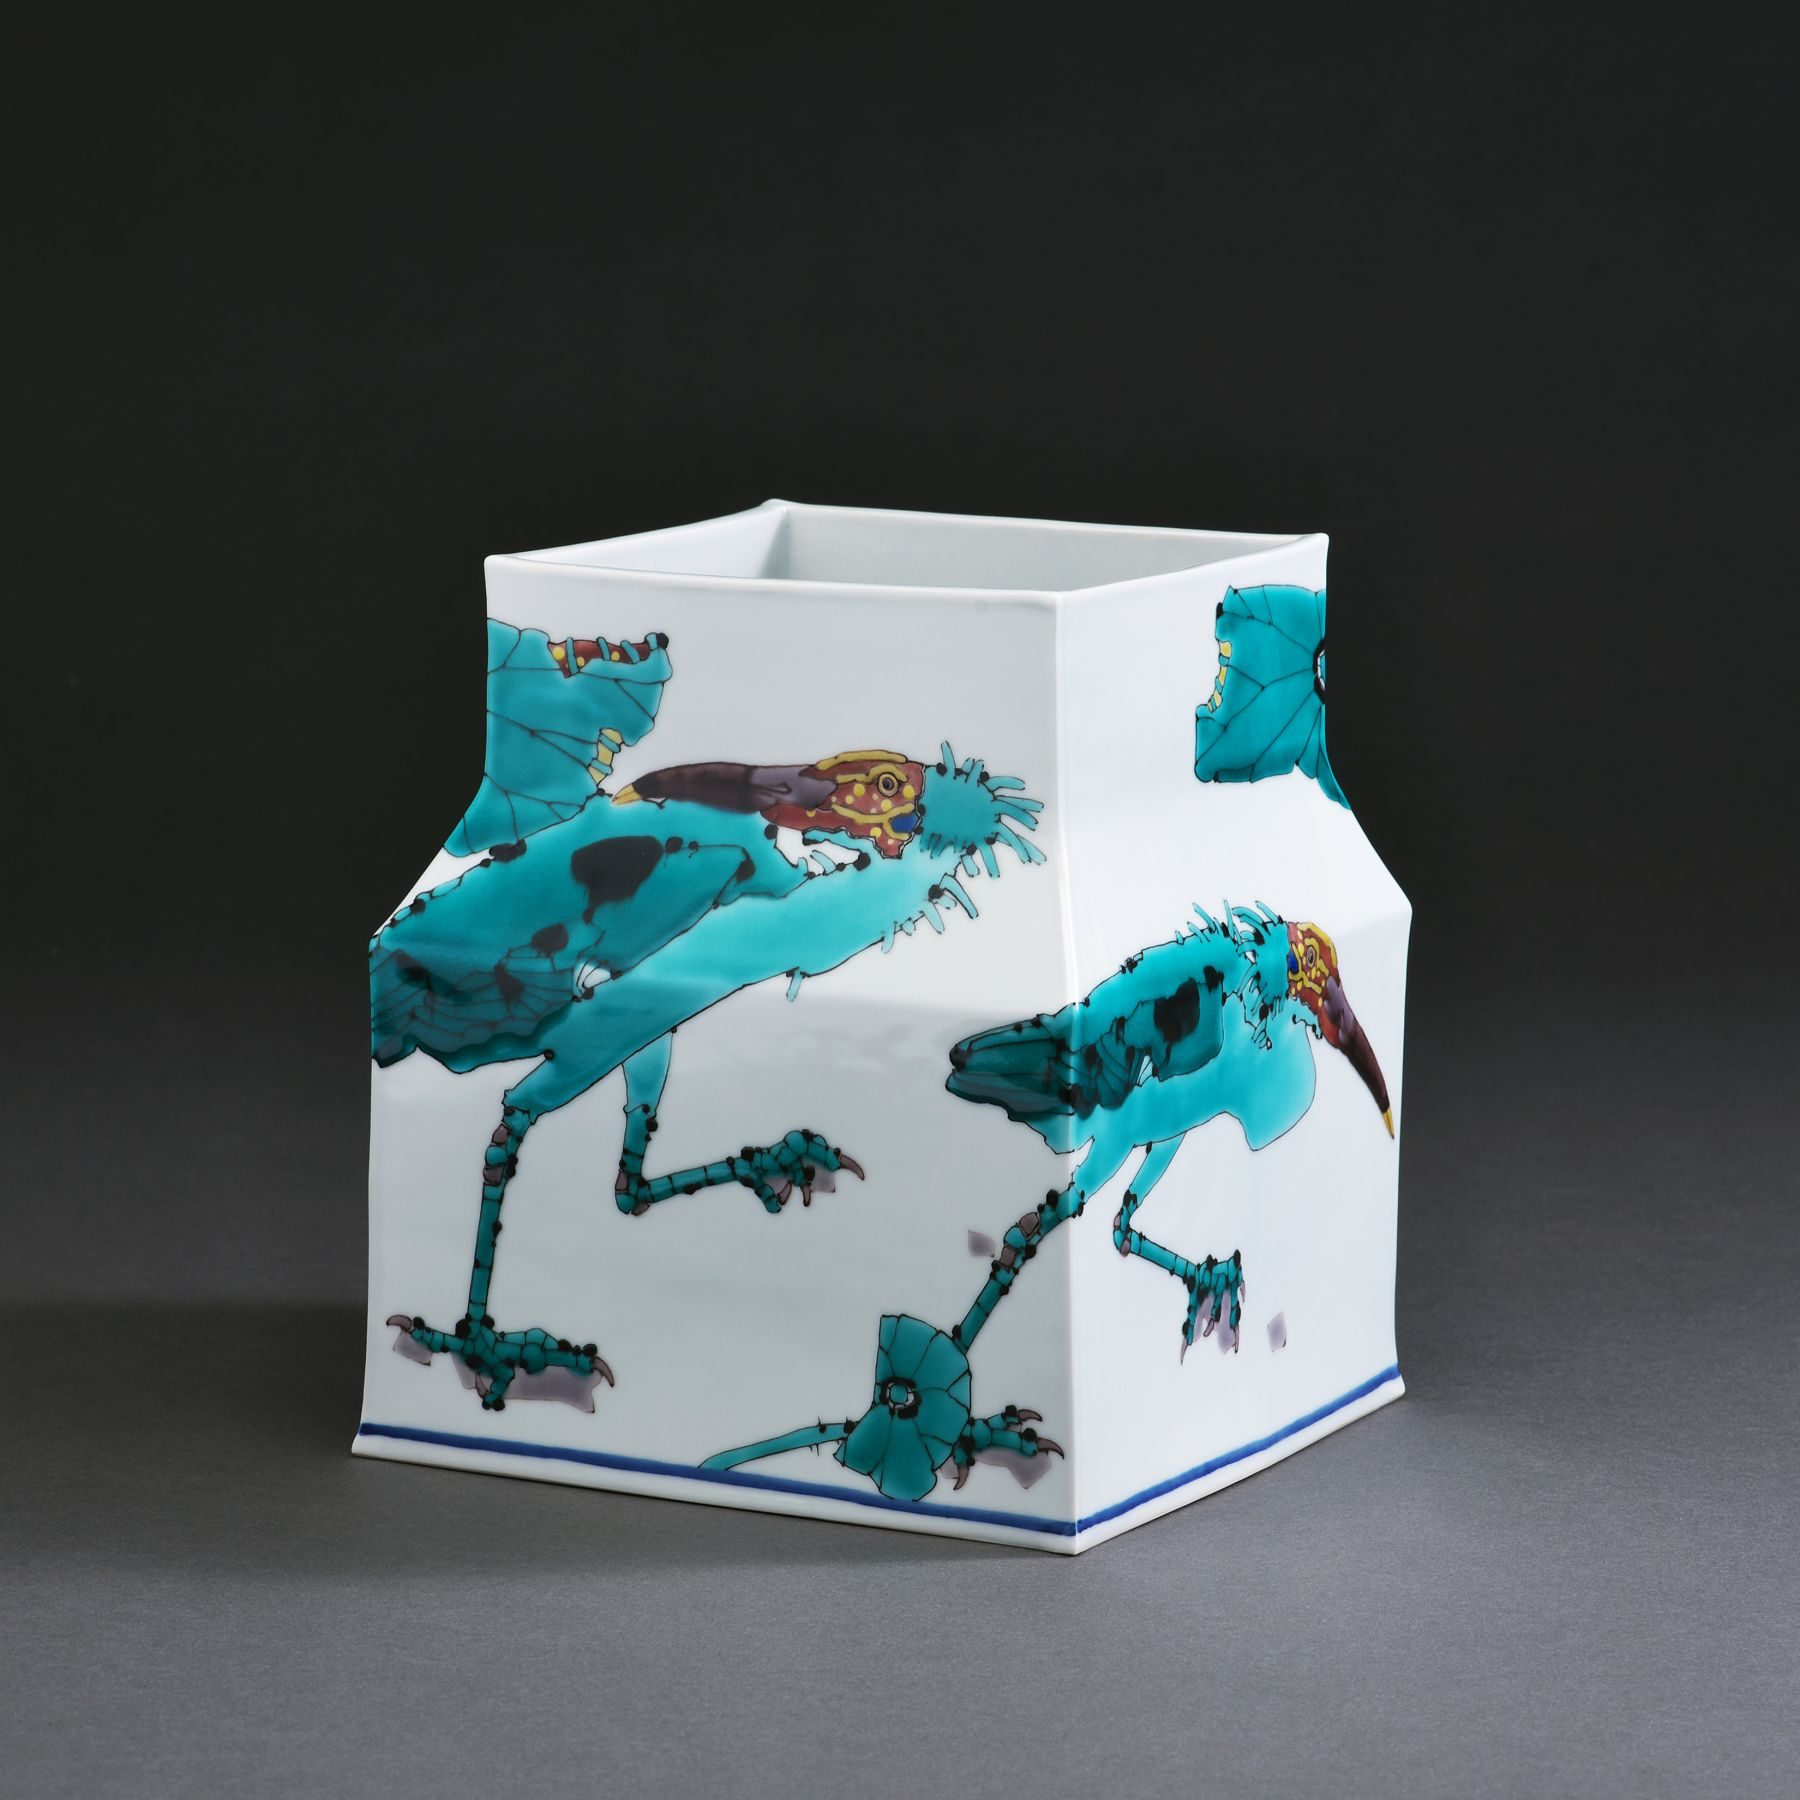 Square vessel with sloped shoulders depicting scenes of Japanese crested ibises, 2017